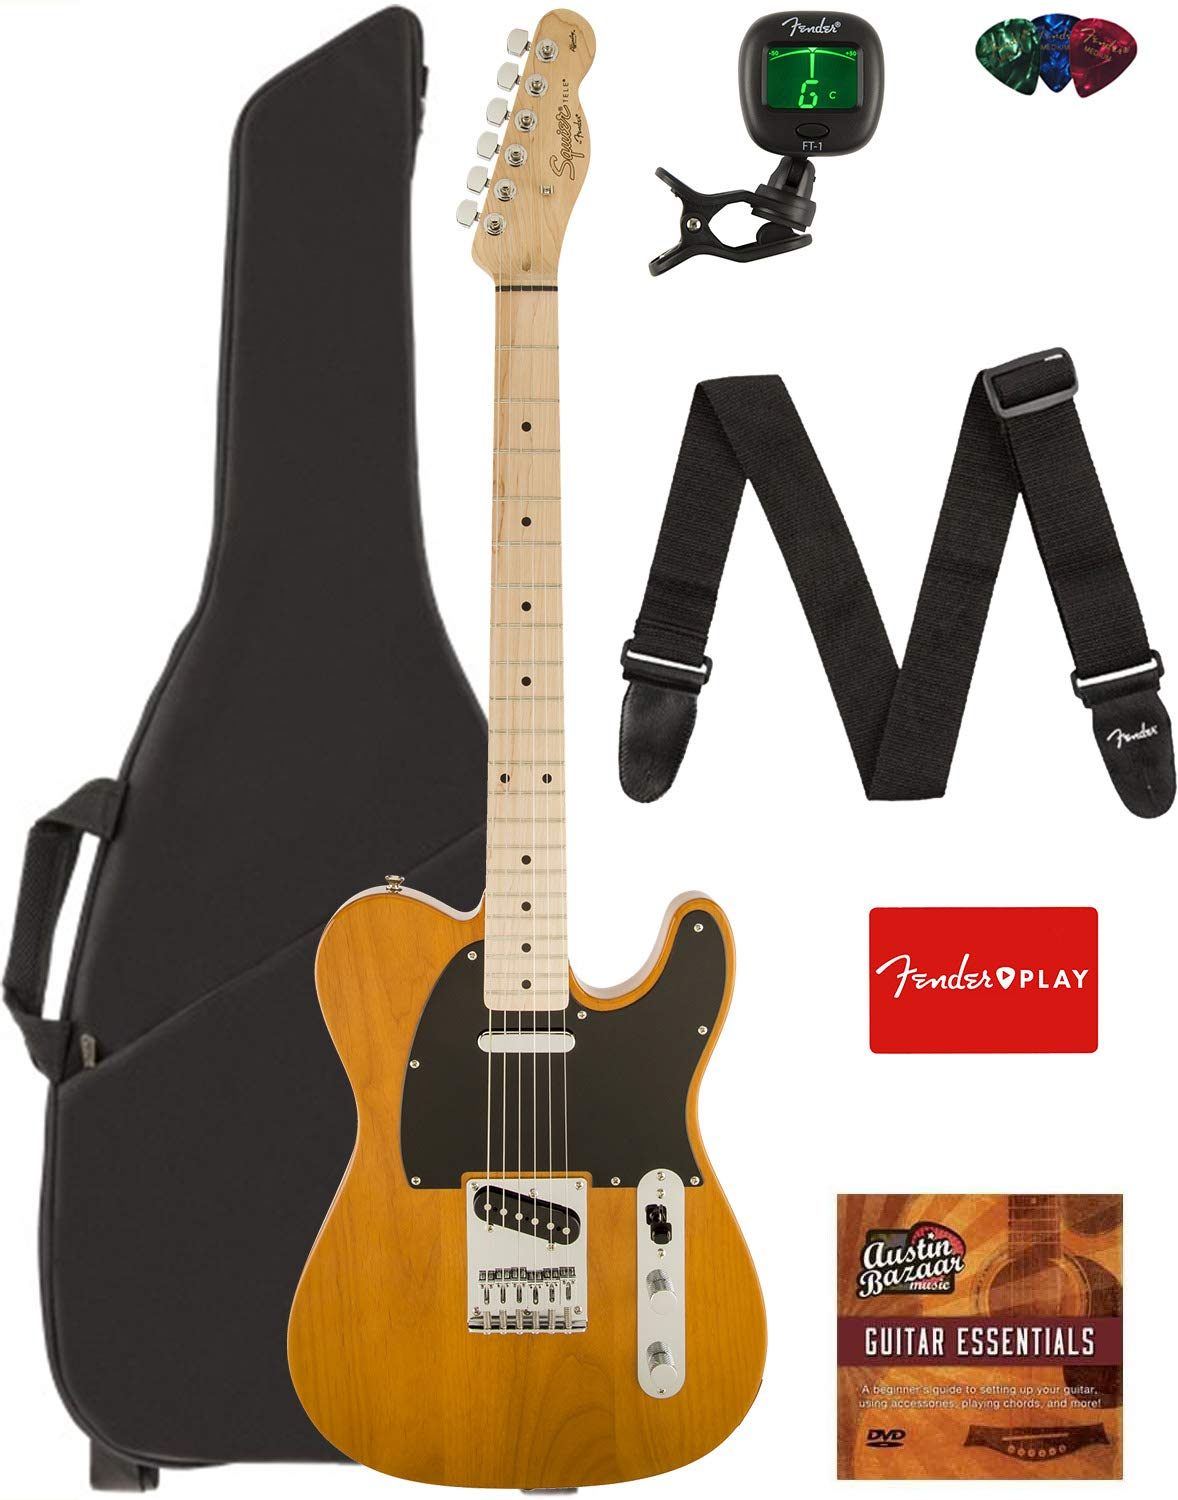 Fender Squier Affinity Series Telecaster Guitar - Maple Fingerboard, Butterscotch Blonde Bundle with Gig Bag, Tuner, Strap, Picks, and Austin Bazaar Instructional DVD